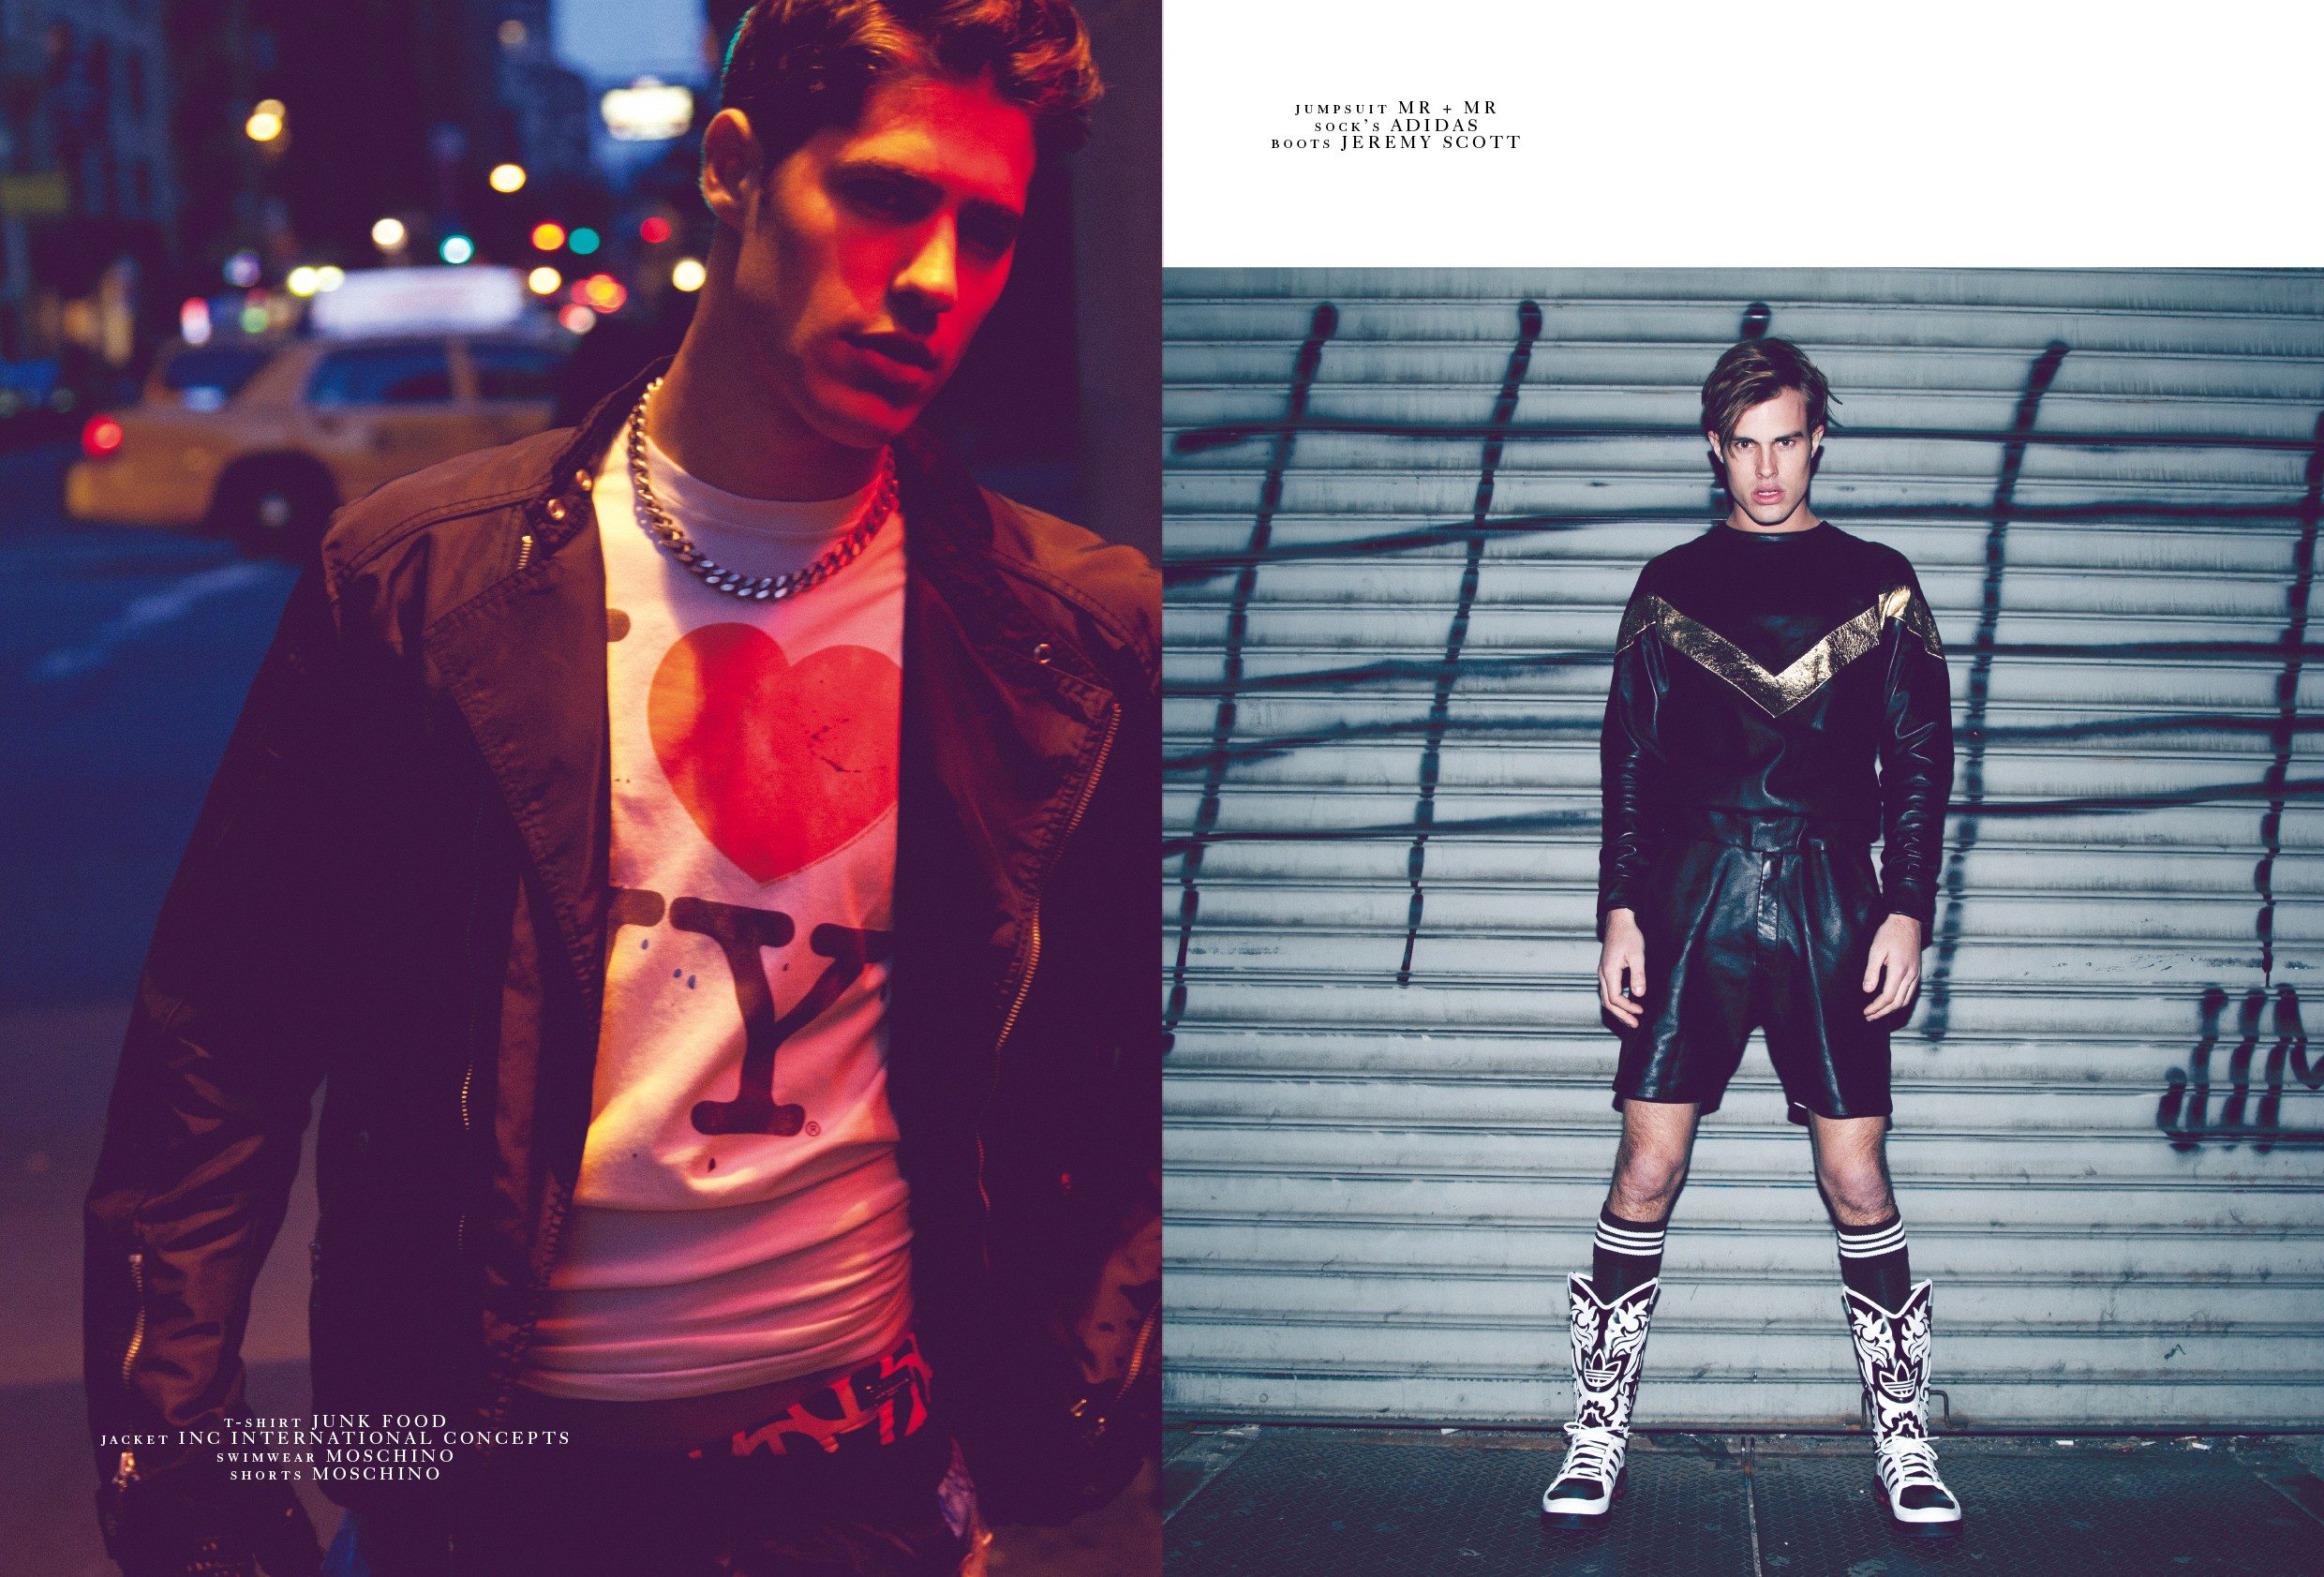 NightShift-roy-fire-joseph-sinclair-dorian-magazine-summer-2012 (3).jpg